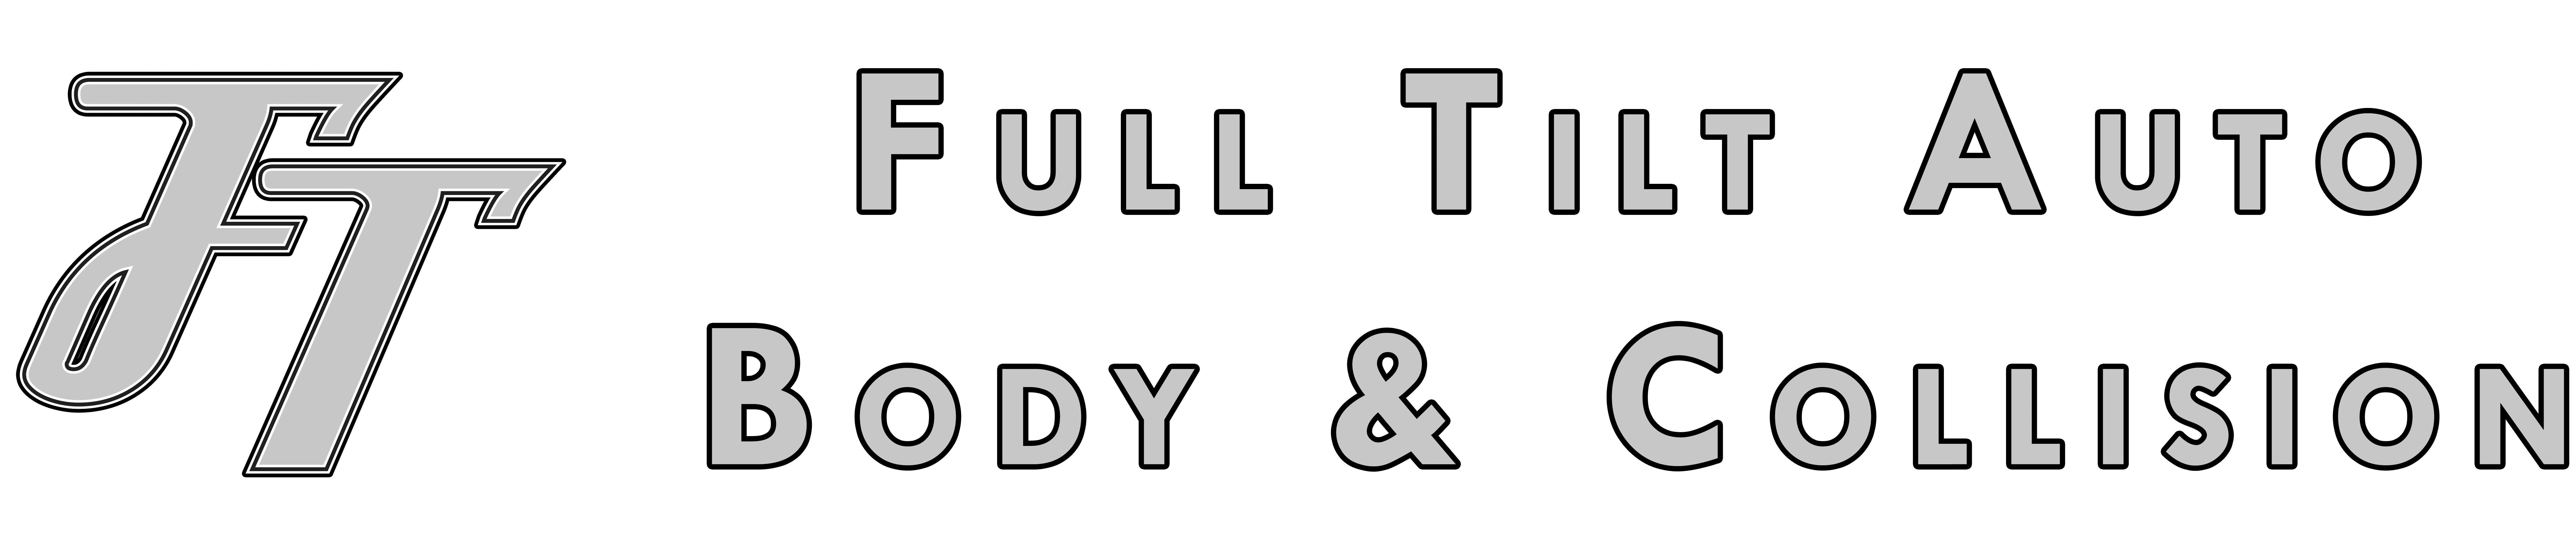 Easthampton Auto Repair - Full Tilt Auto Body & Collision